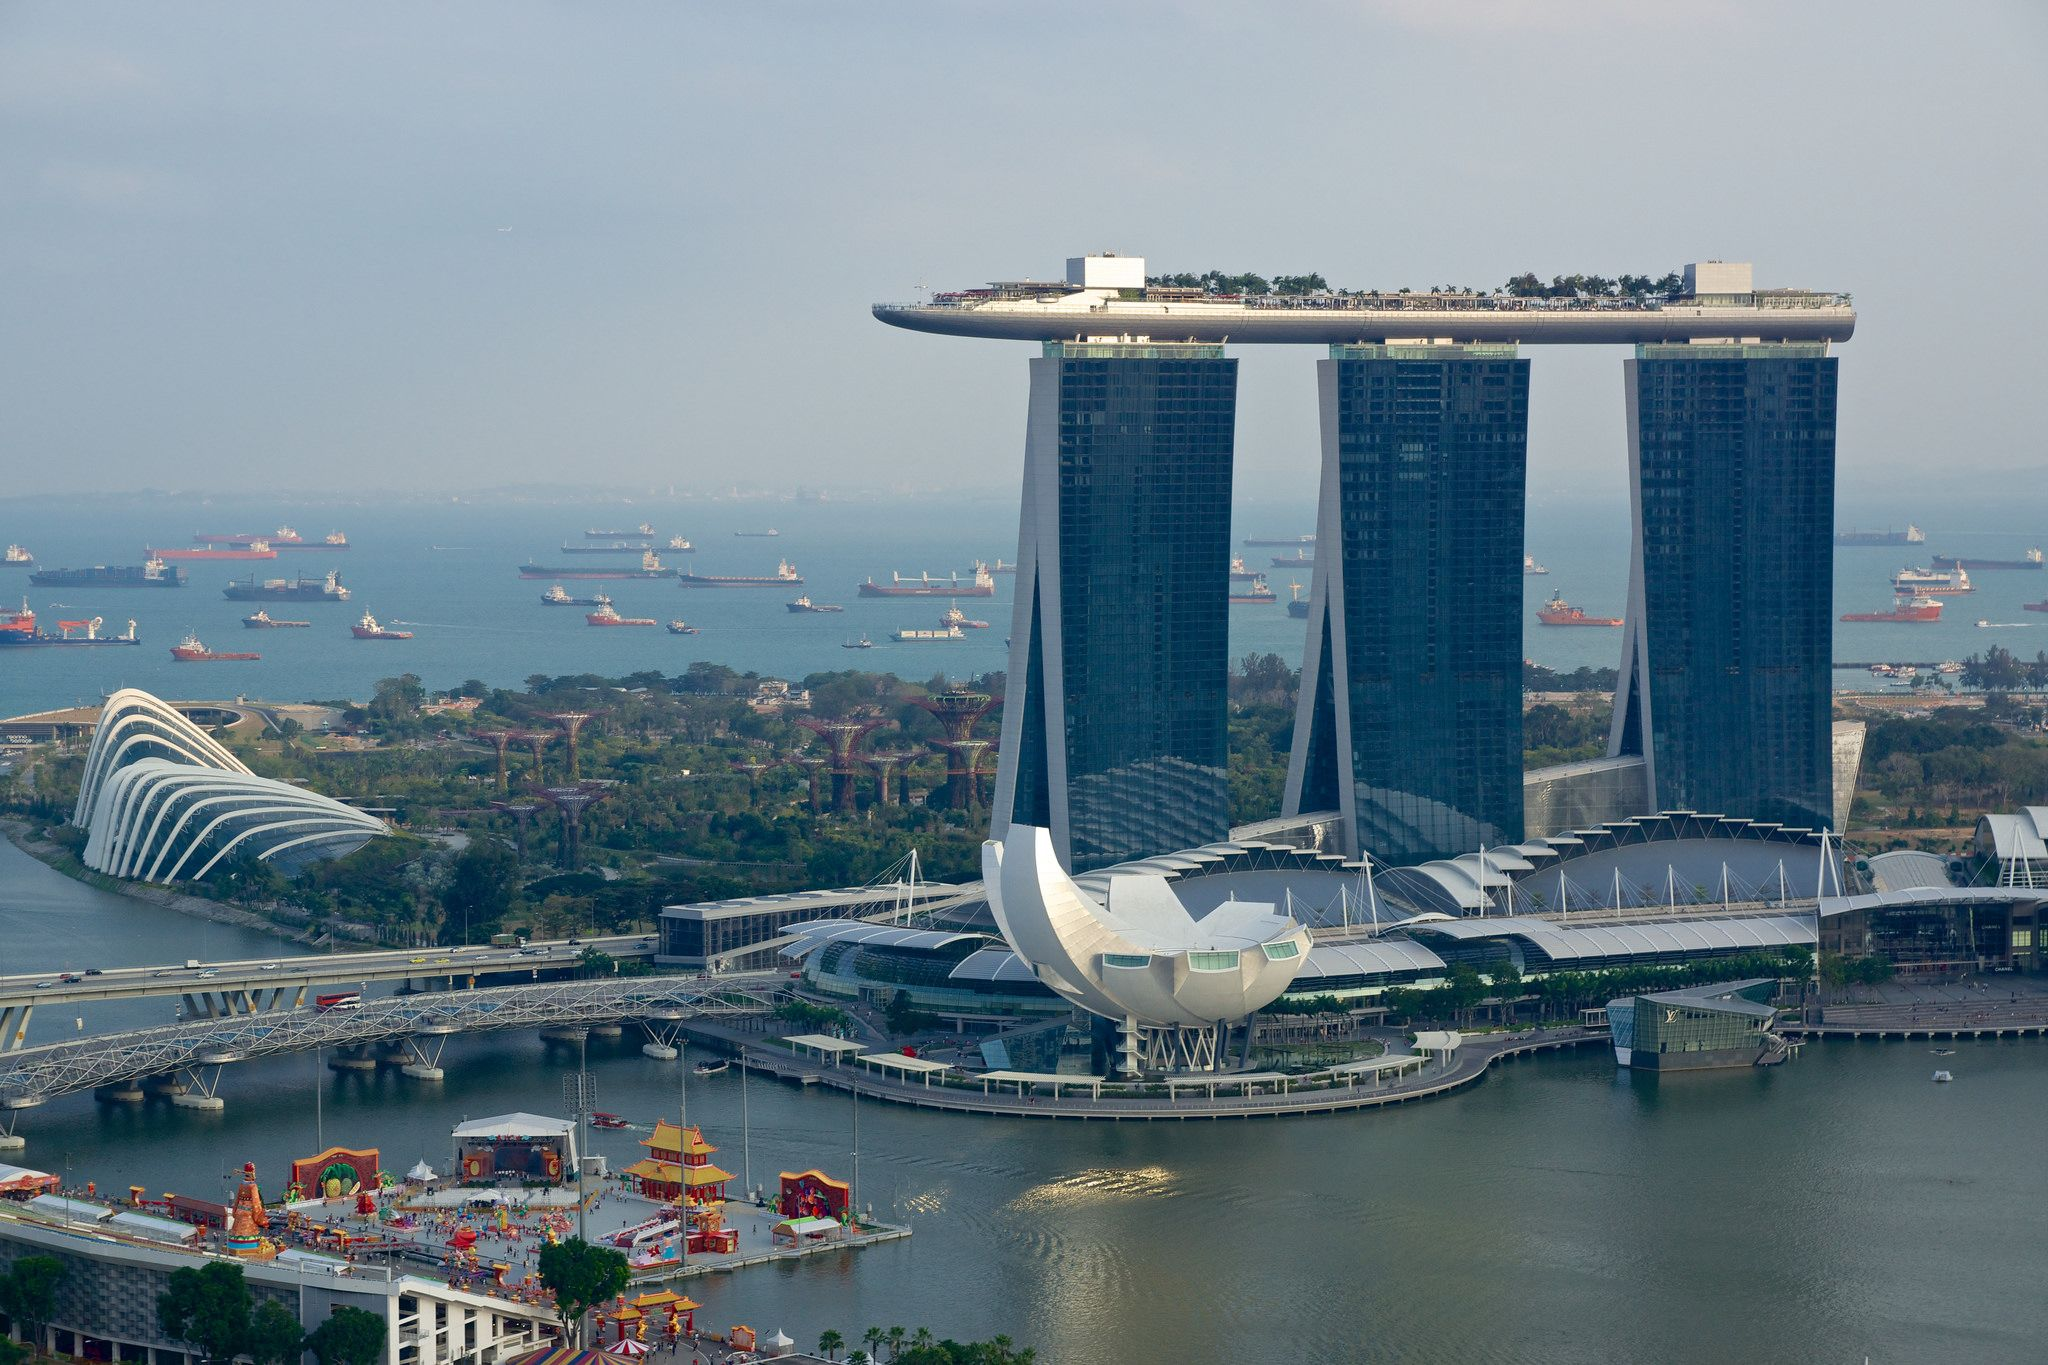 Marina Bay Sands Singapore Marina Bay Sands Hotel Singapore Singapore Sands